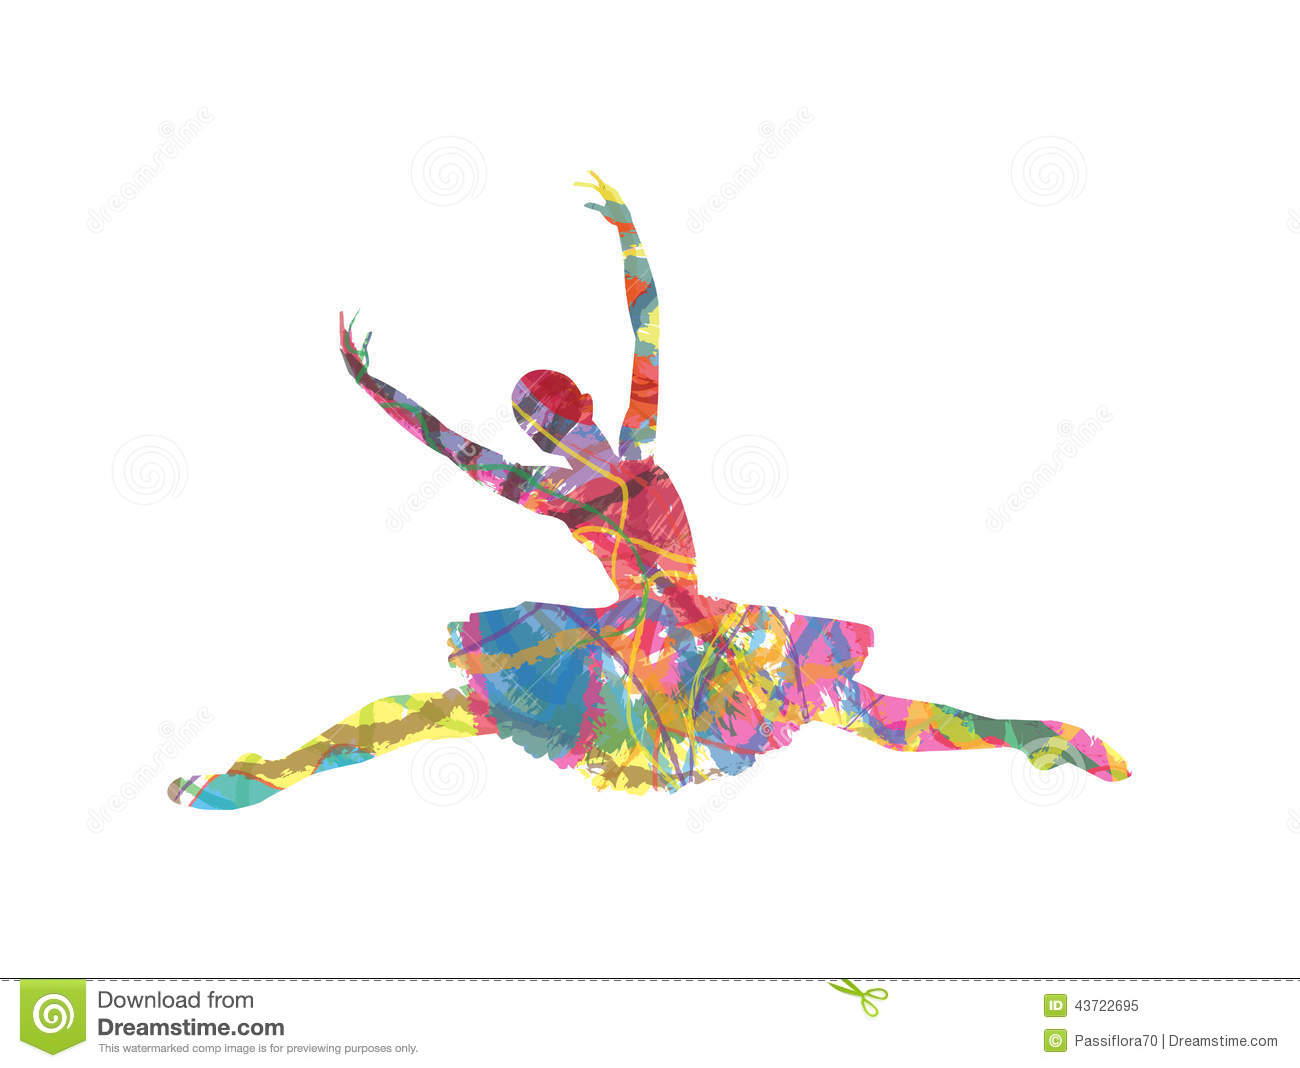 Abstract Vector Silhouette Dancing Girl Stock Vector - Image: 43722695: www.dreamstime.com/stock-illustration-abstract-vector-silhouette...